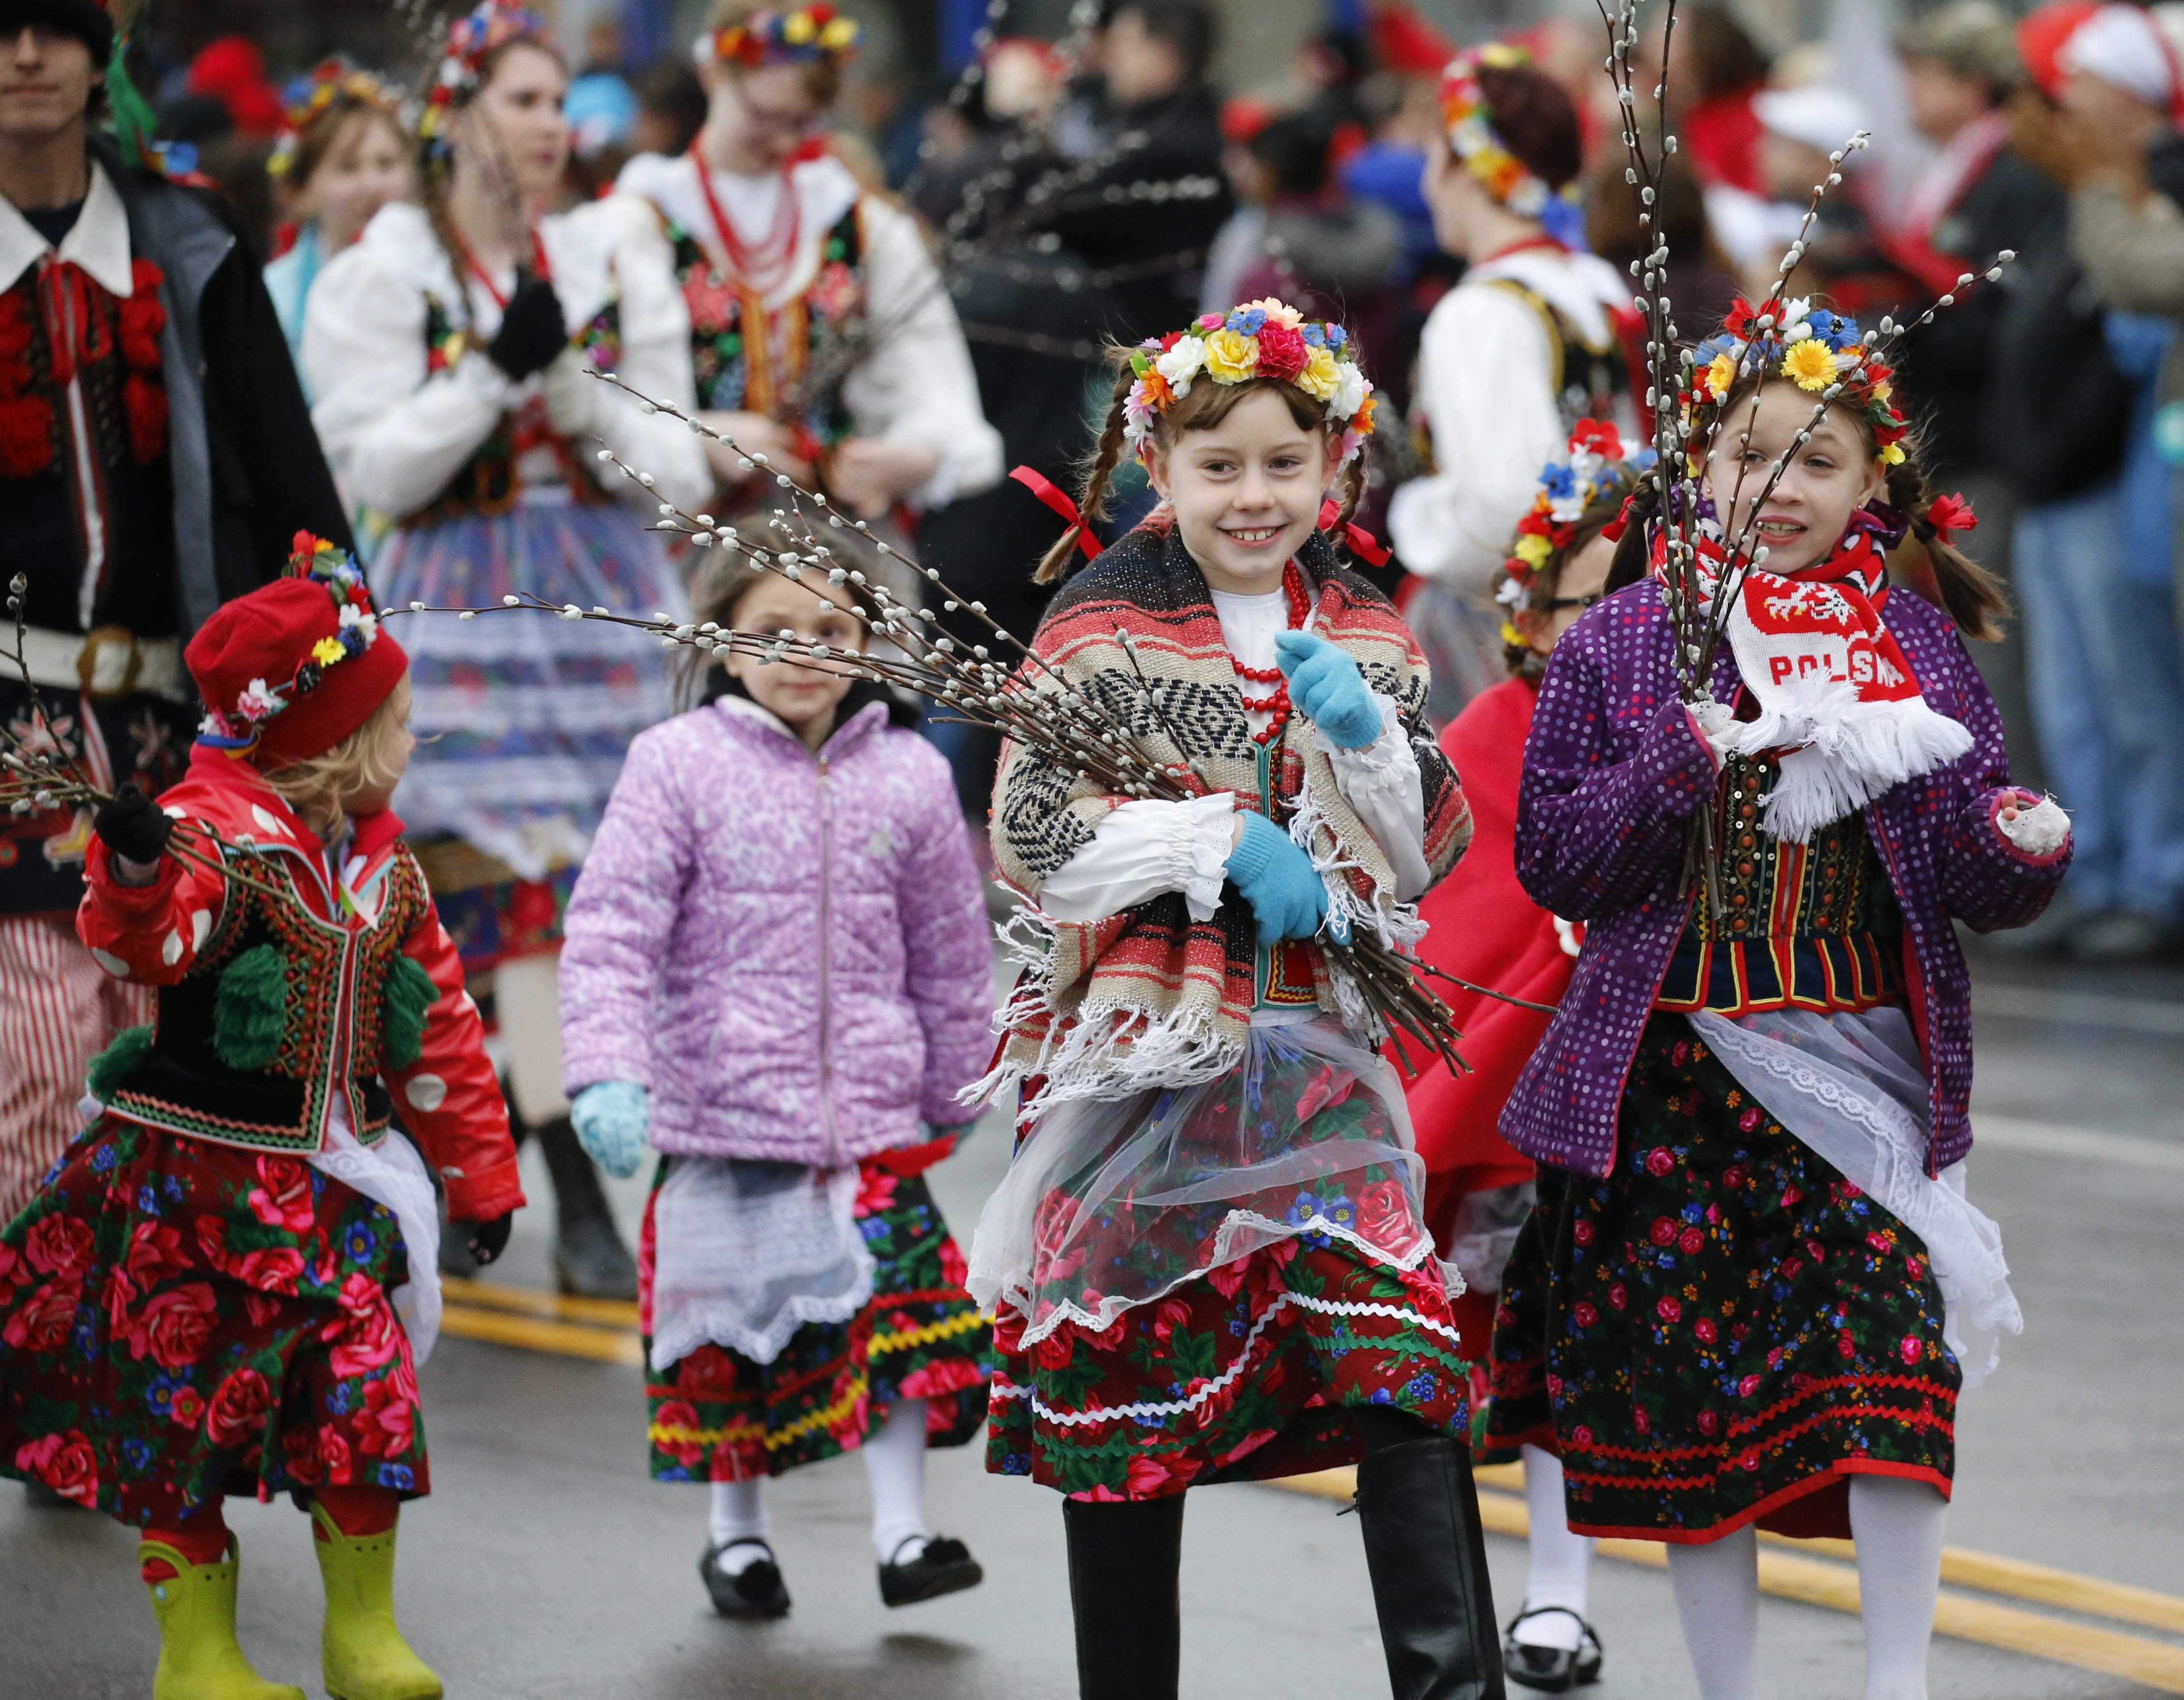 df620a7b7927 Armed with pussy willows, revelers in traditional Polish dress march Monday  in the Dyngus Day